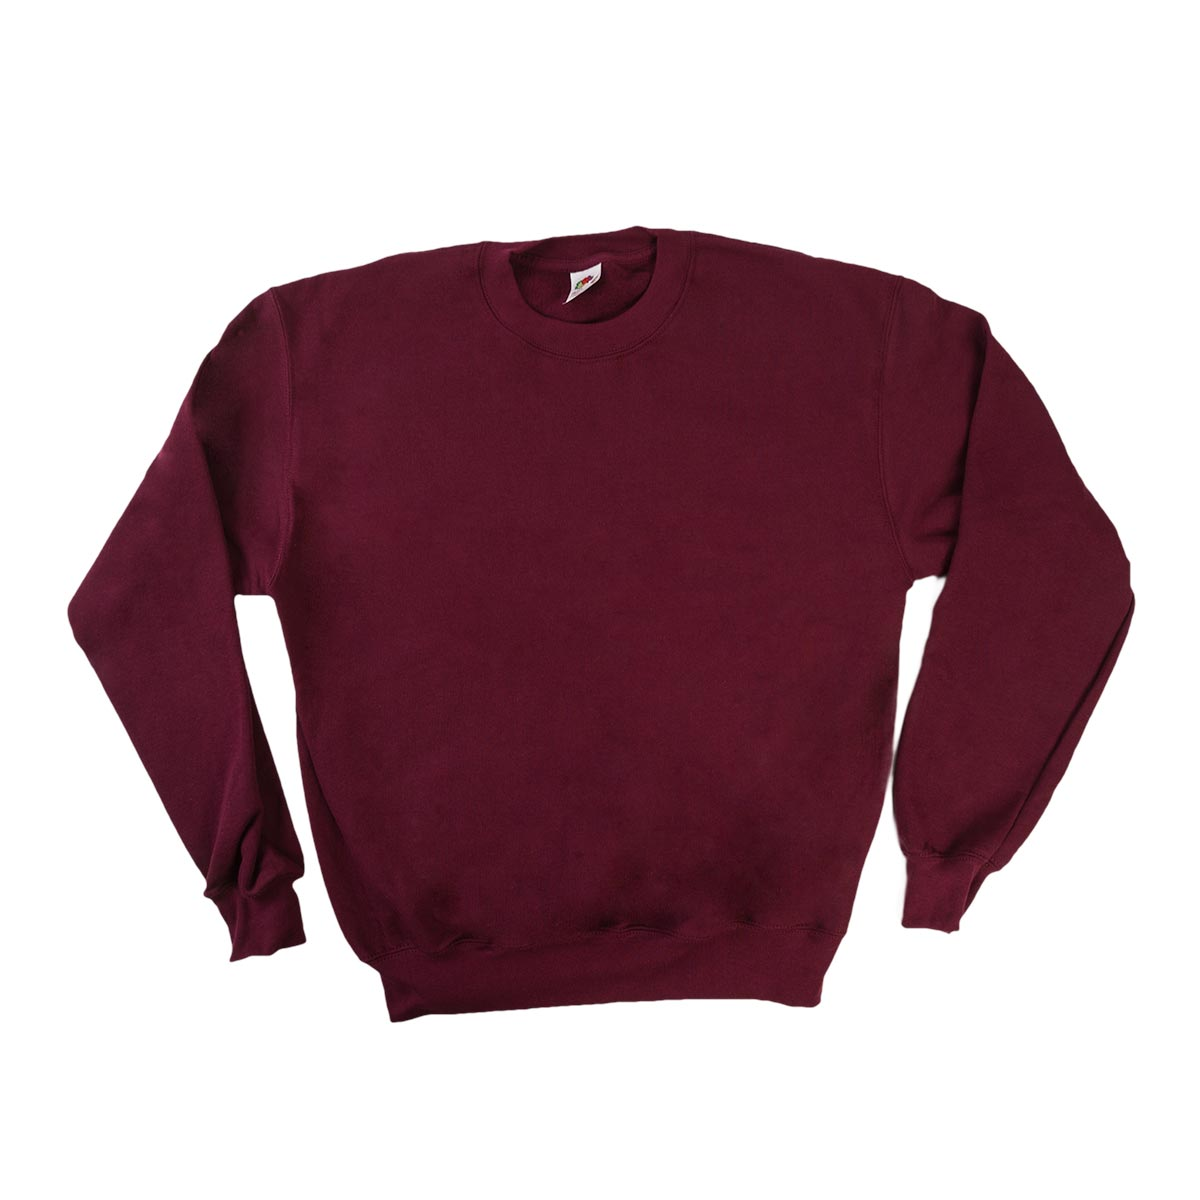 Fruit Of The Loom Classic Set-In Sweatshirts